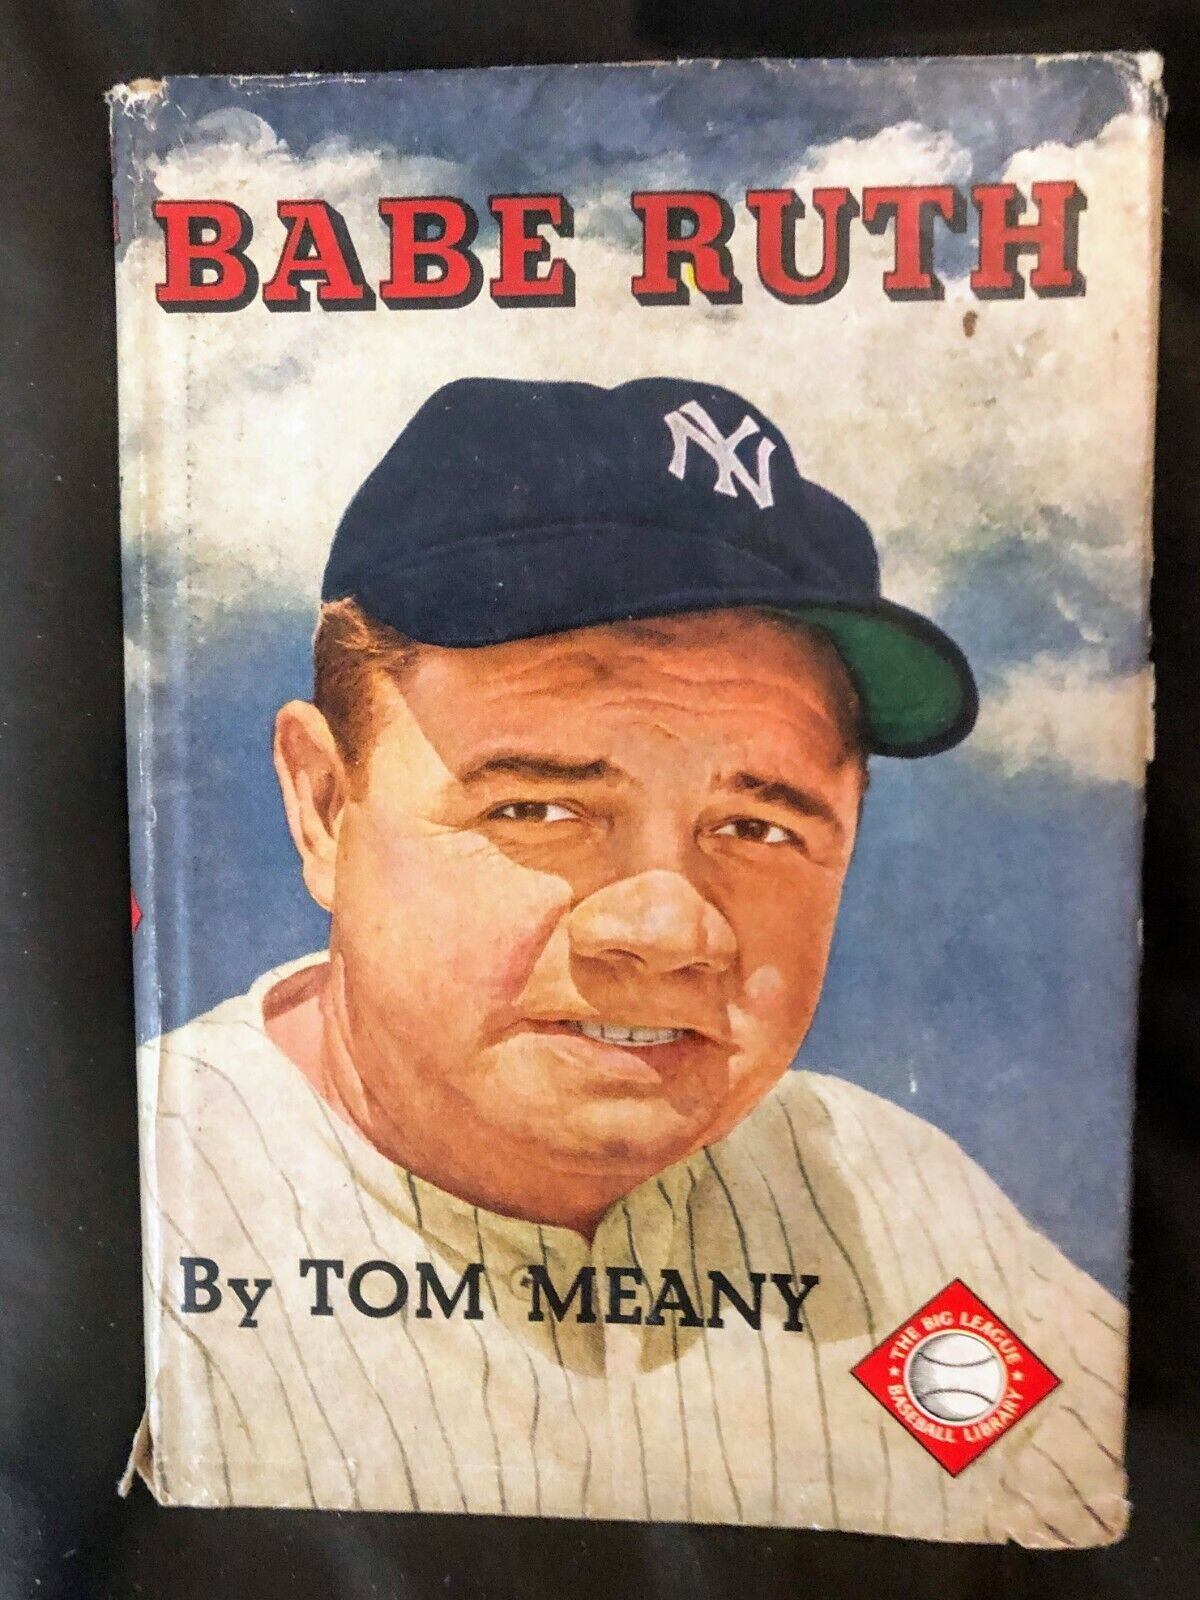 1951 Babe Ruth By Tom Meany Hardcover With Dust Jacket PLUS 3 PICTURES - $1.99